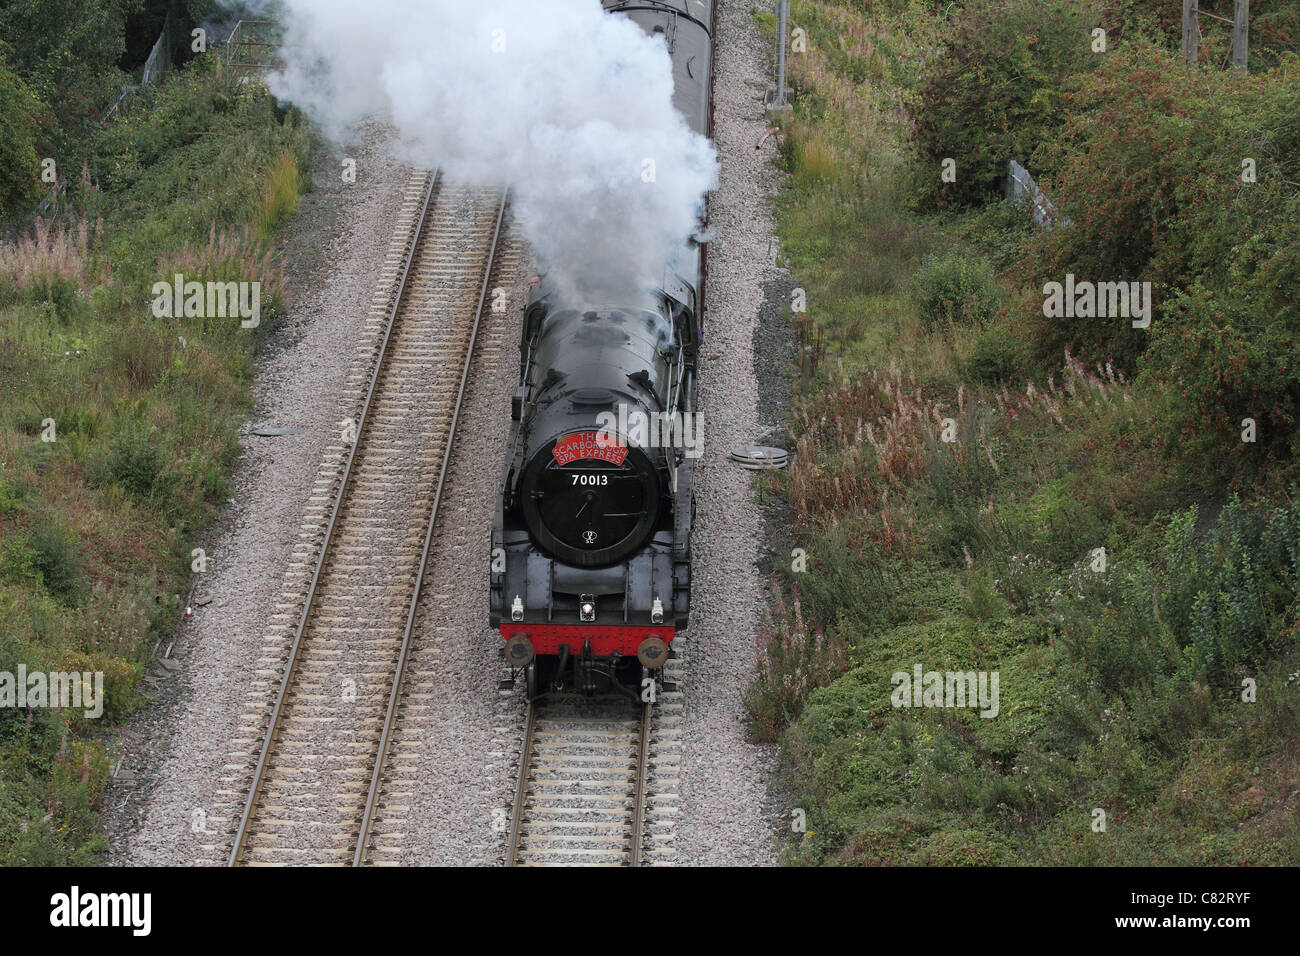 Scarborough express Steam locomotive  train with smoke running on tracks - Stock Image